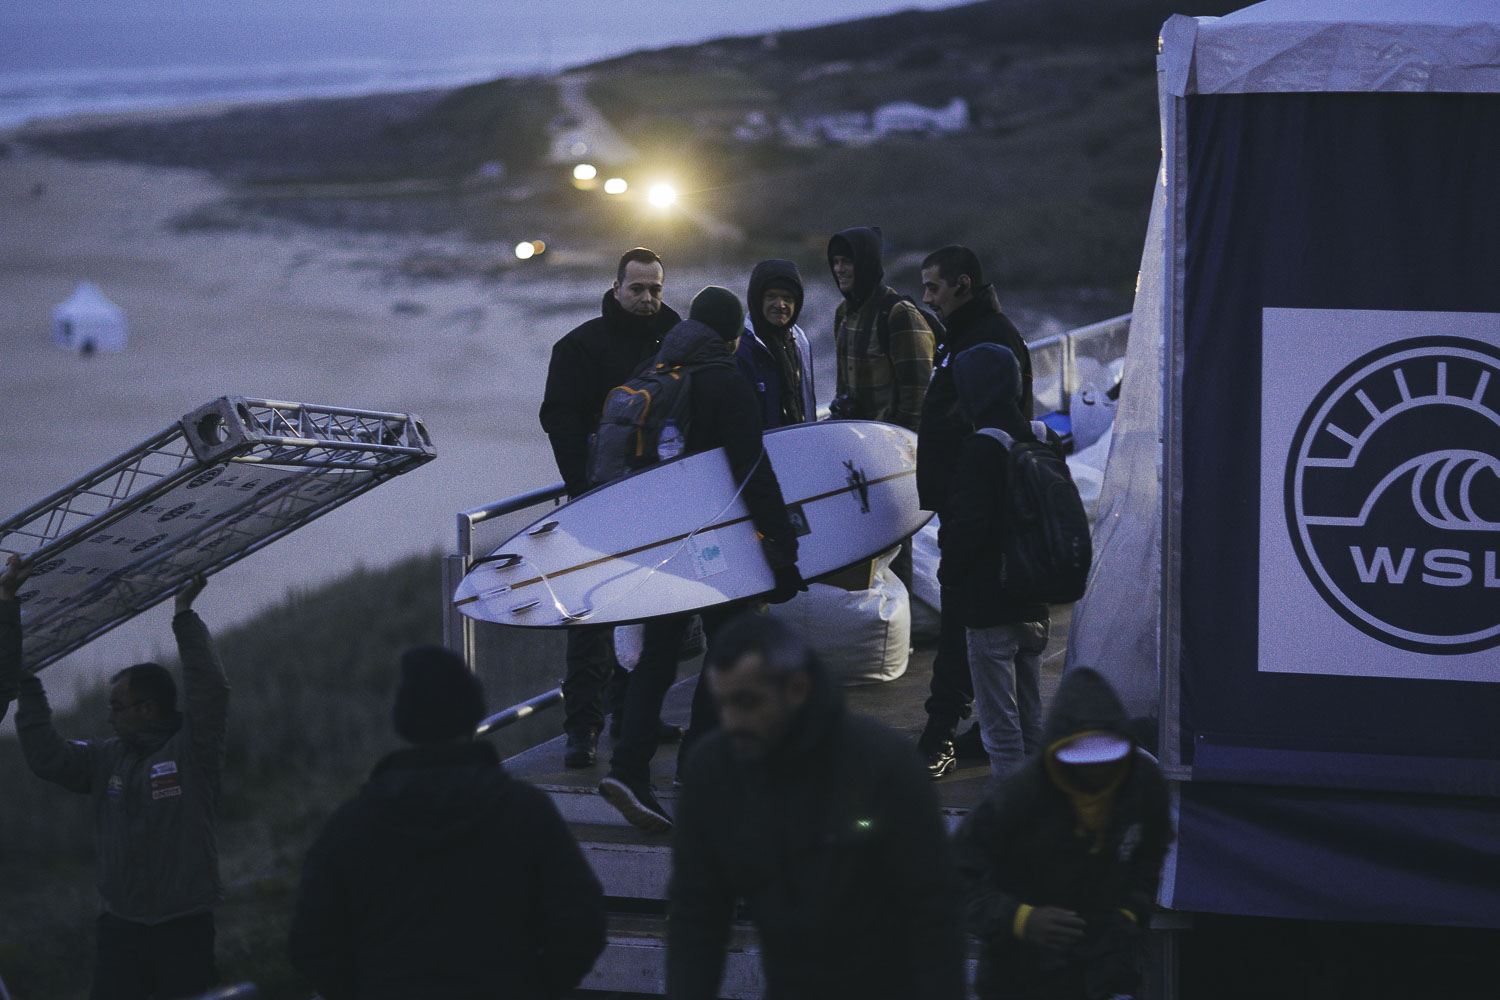 Early morning at Nazare. With only a couple of days warning people work through the night to get the event setup.